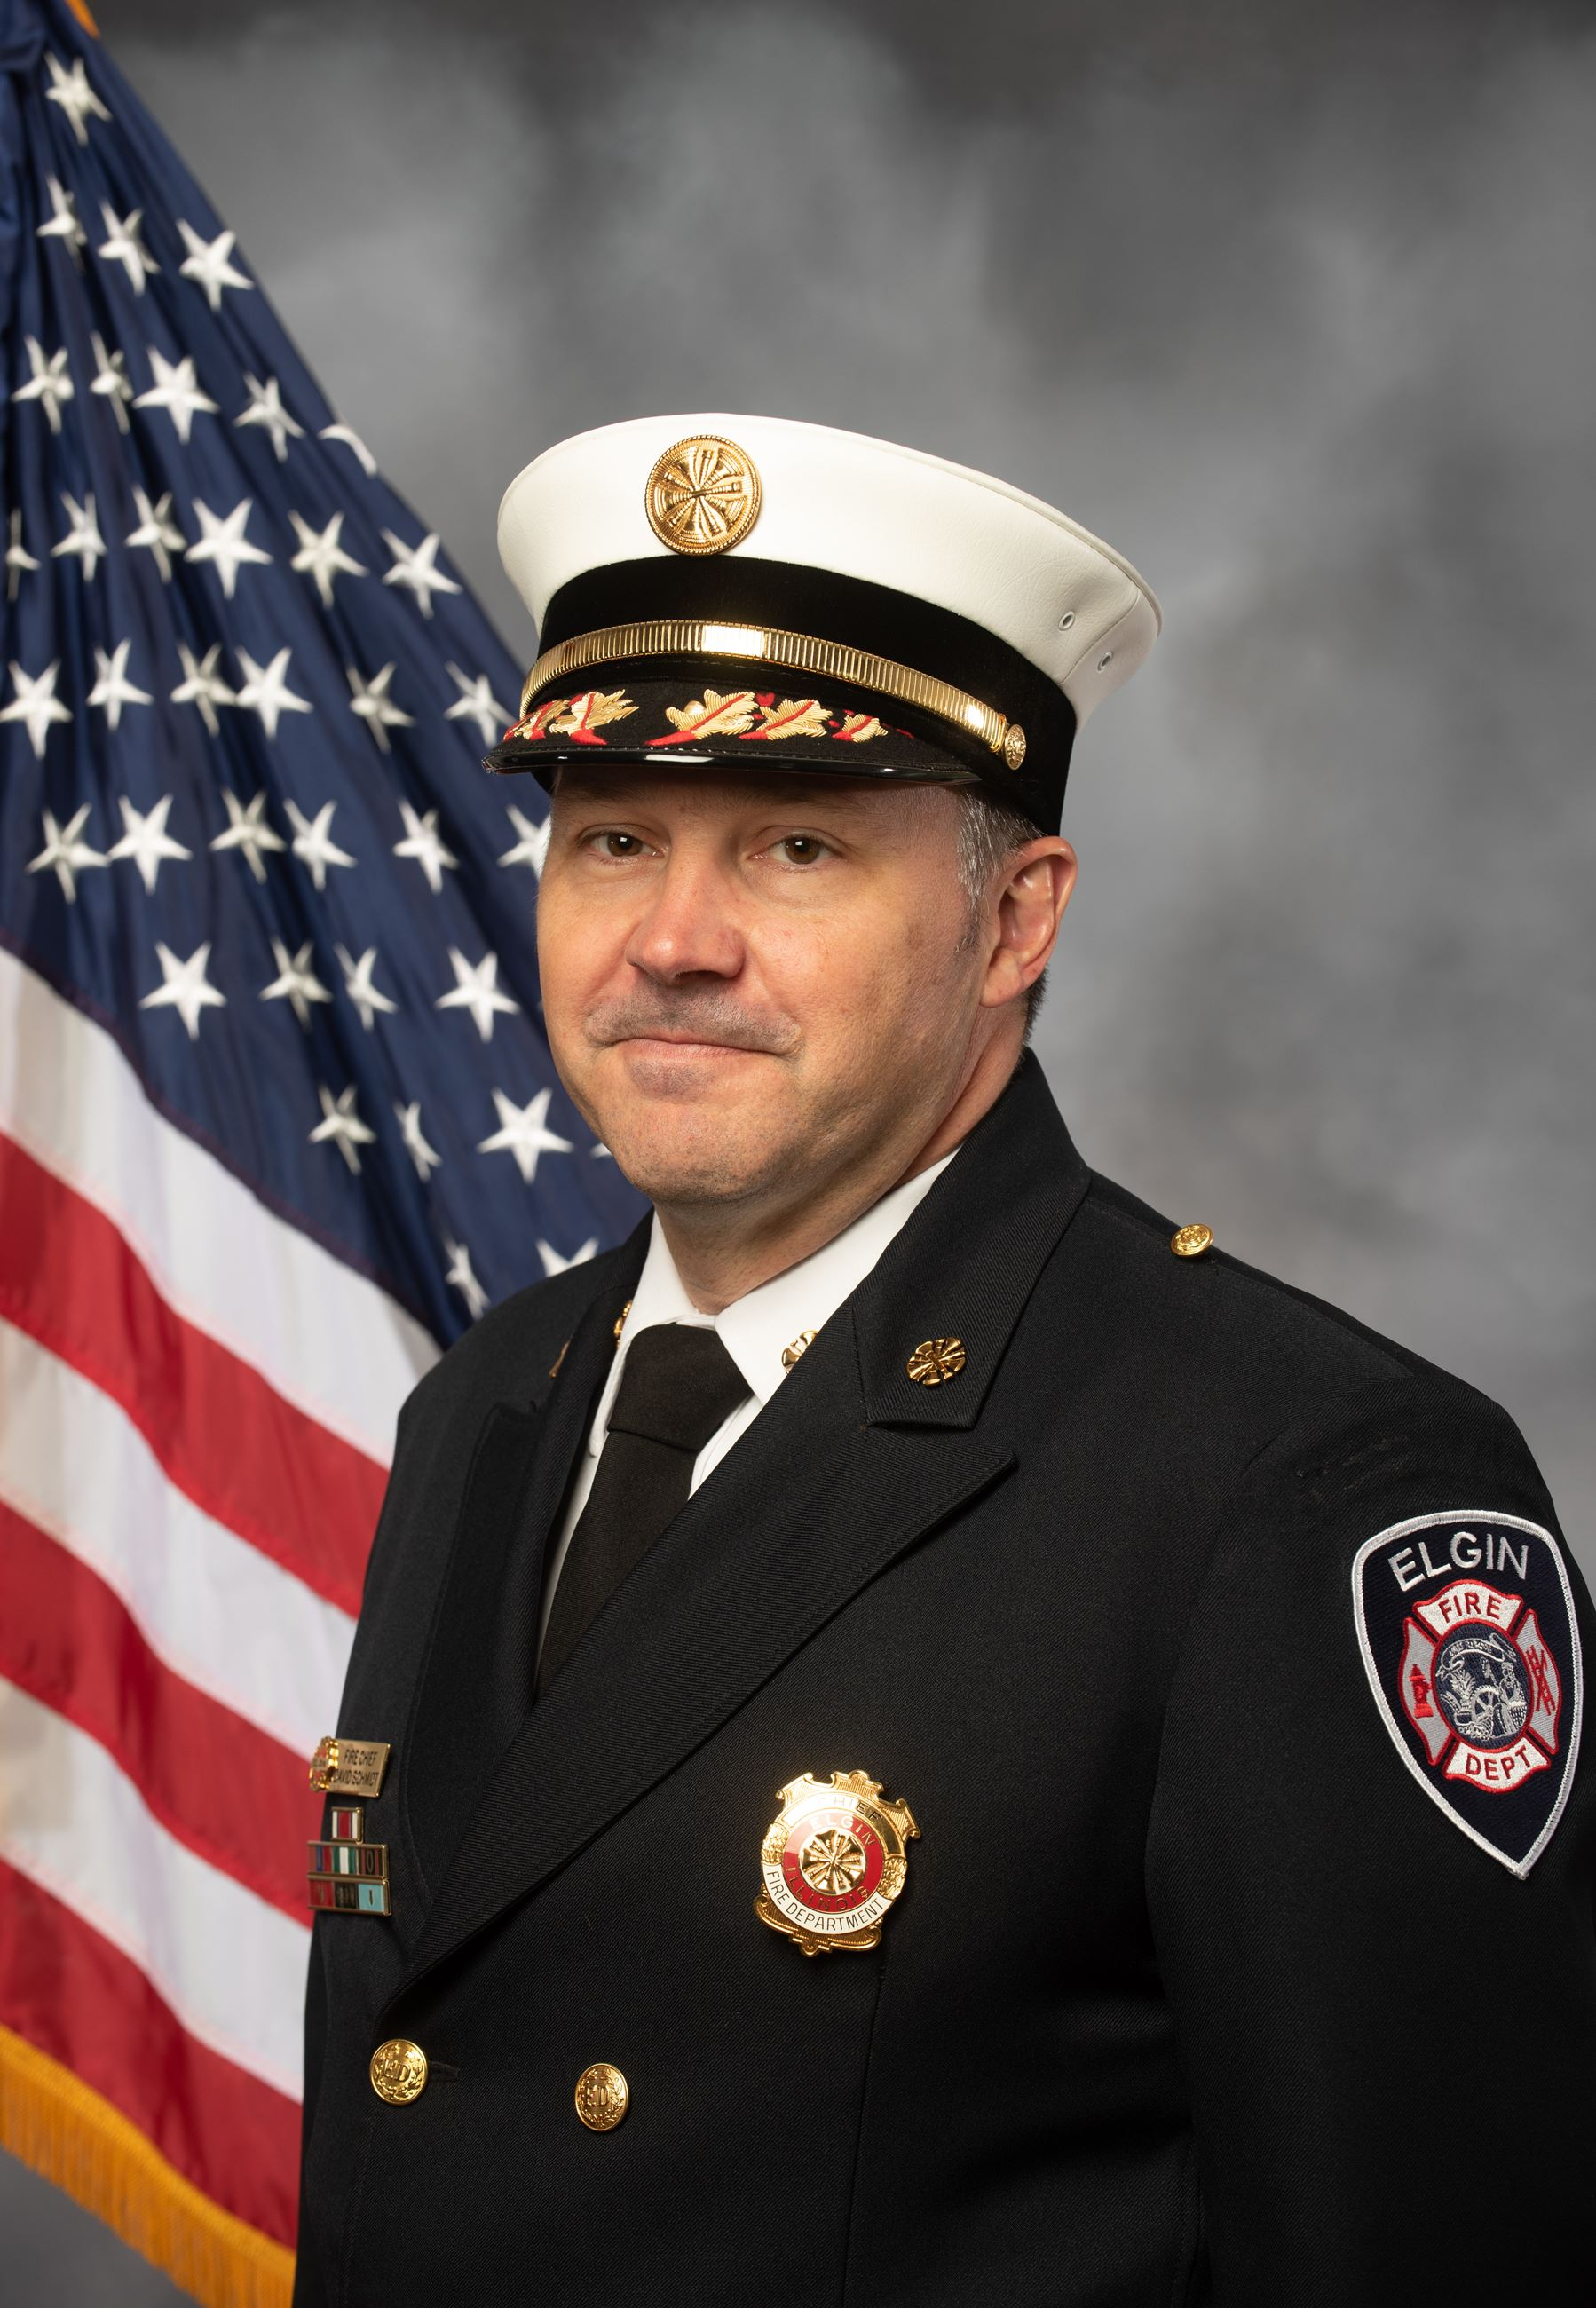 Chief David Schmidt headshot photo with American flag